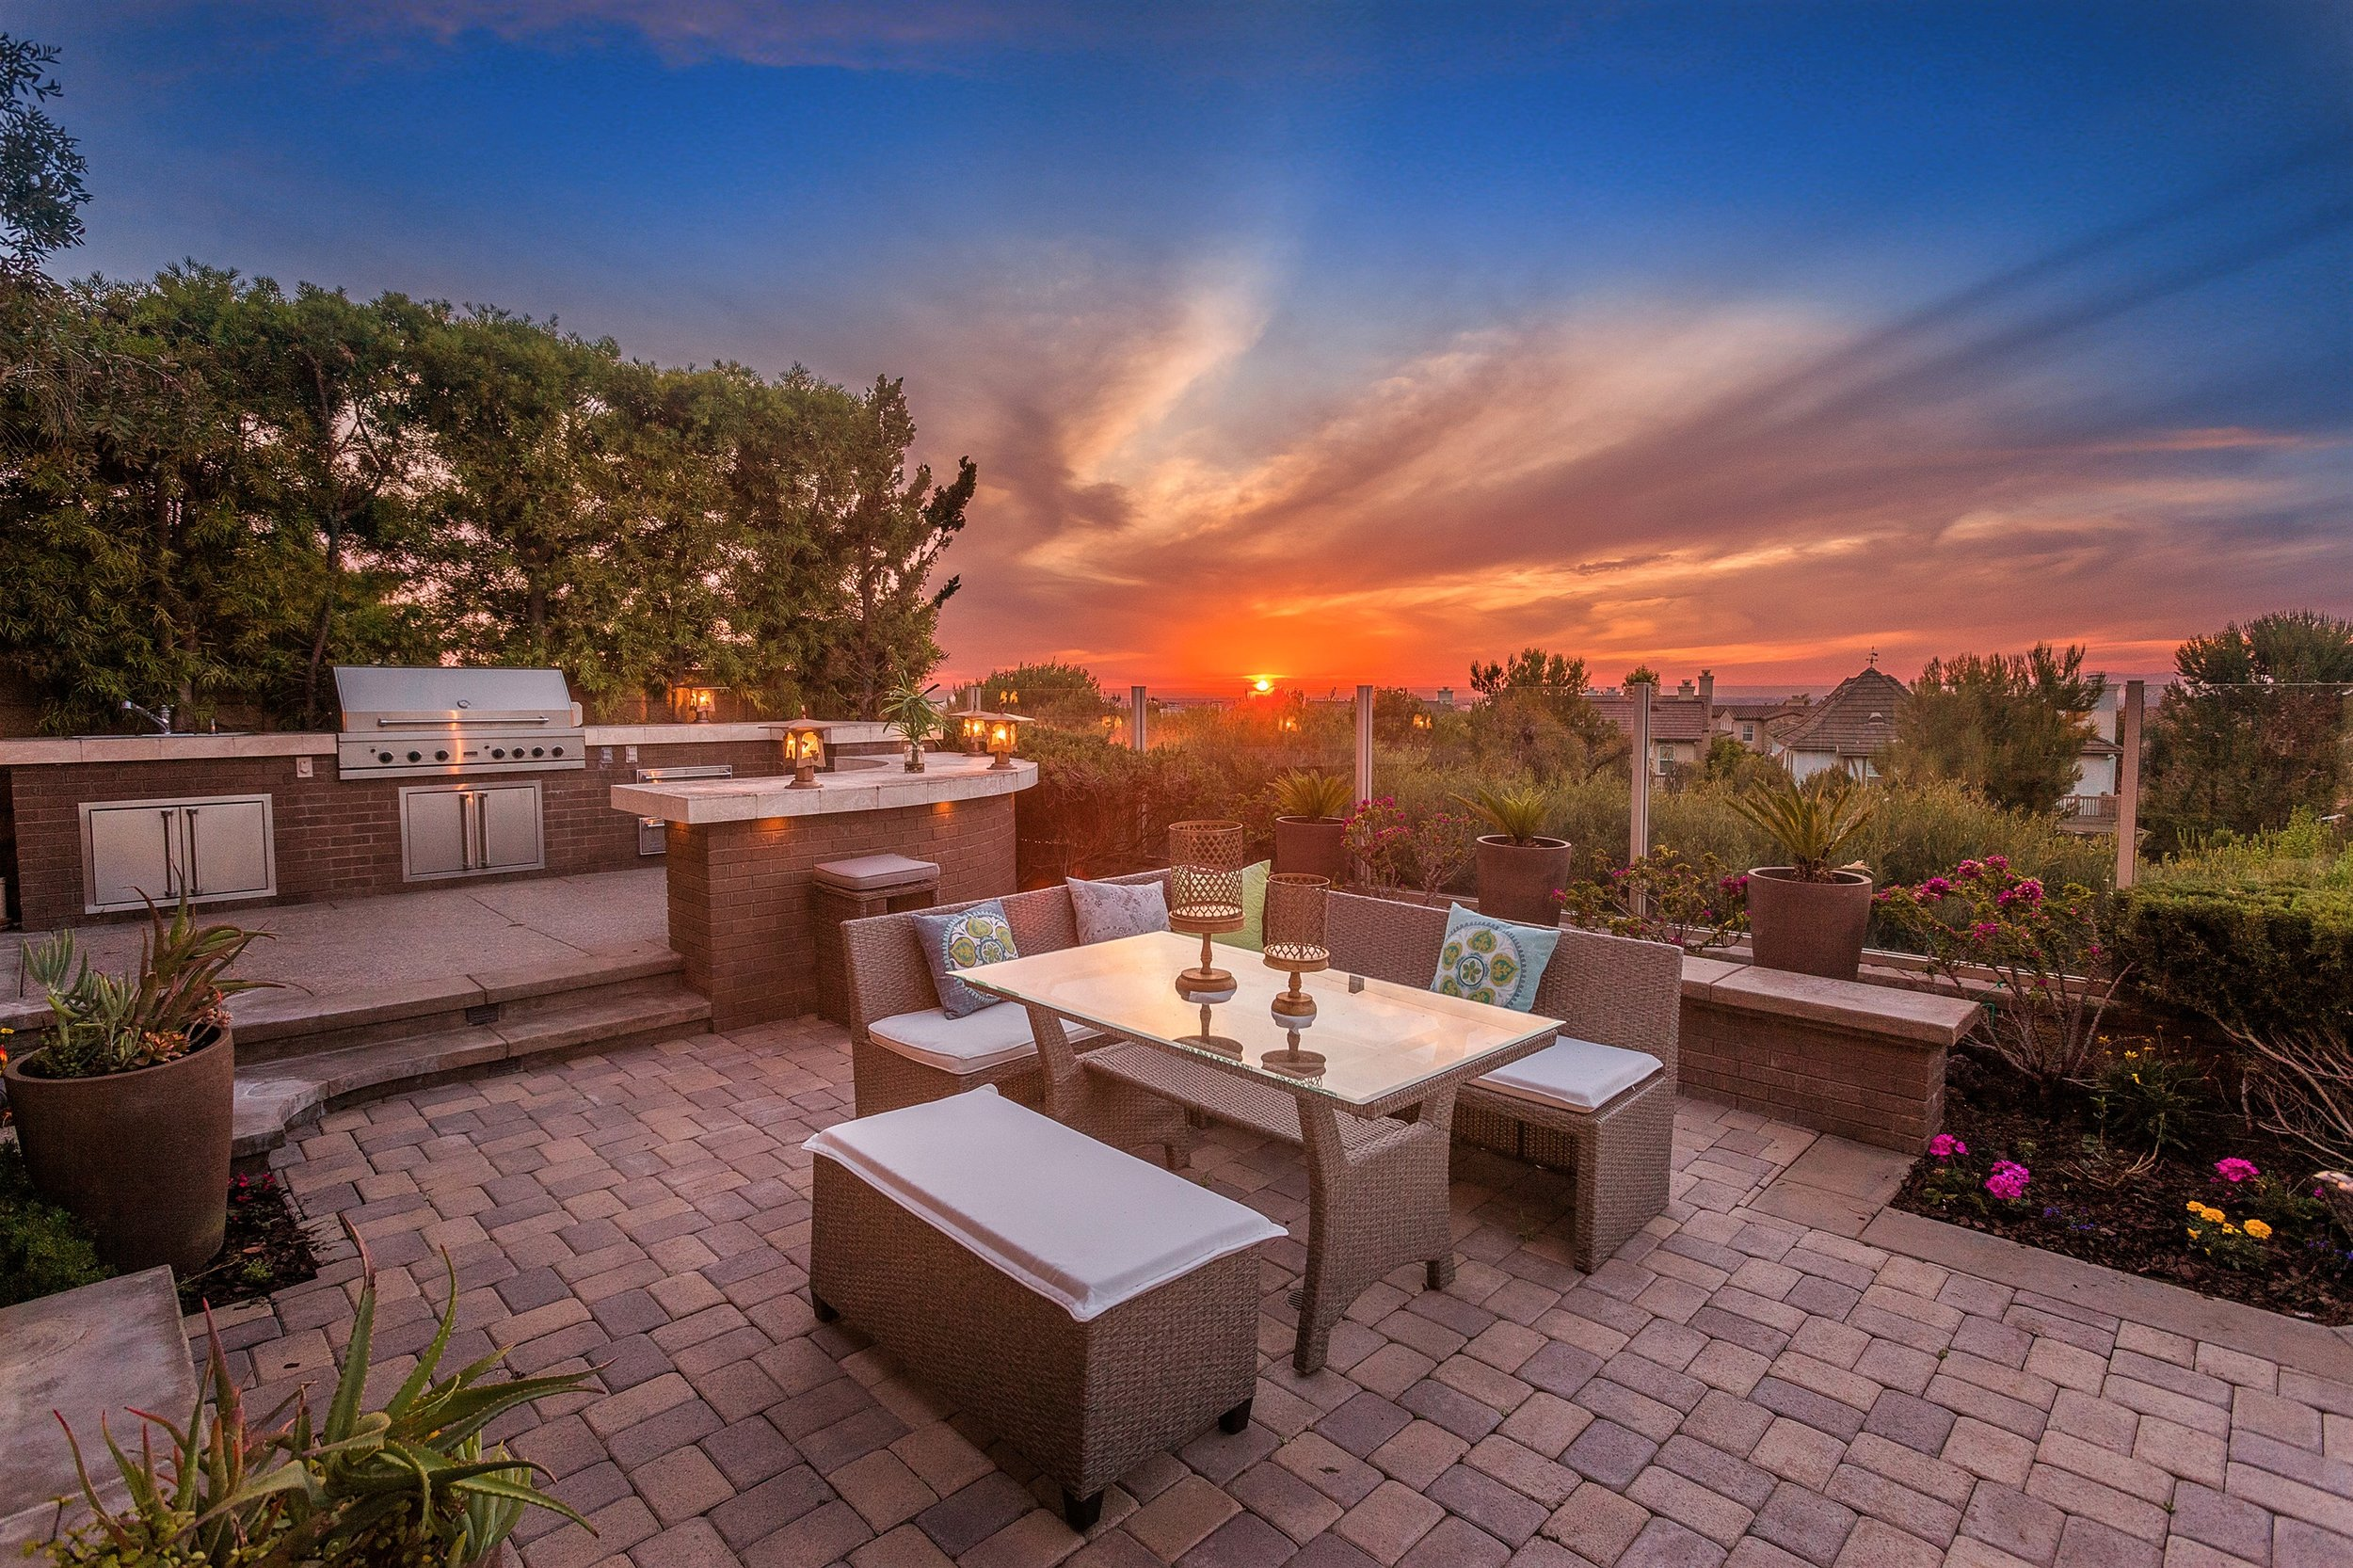 3 Ferrand - bbq area sunset view.jpg